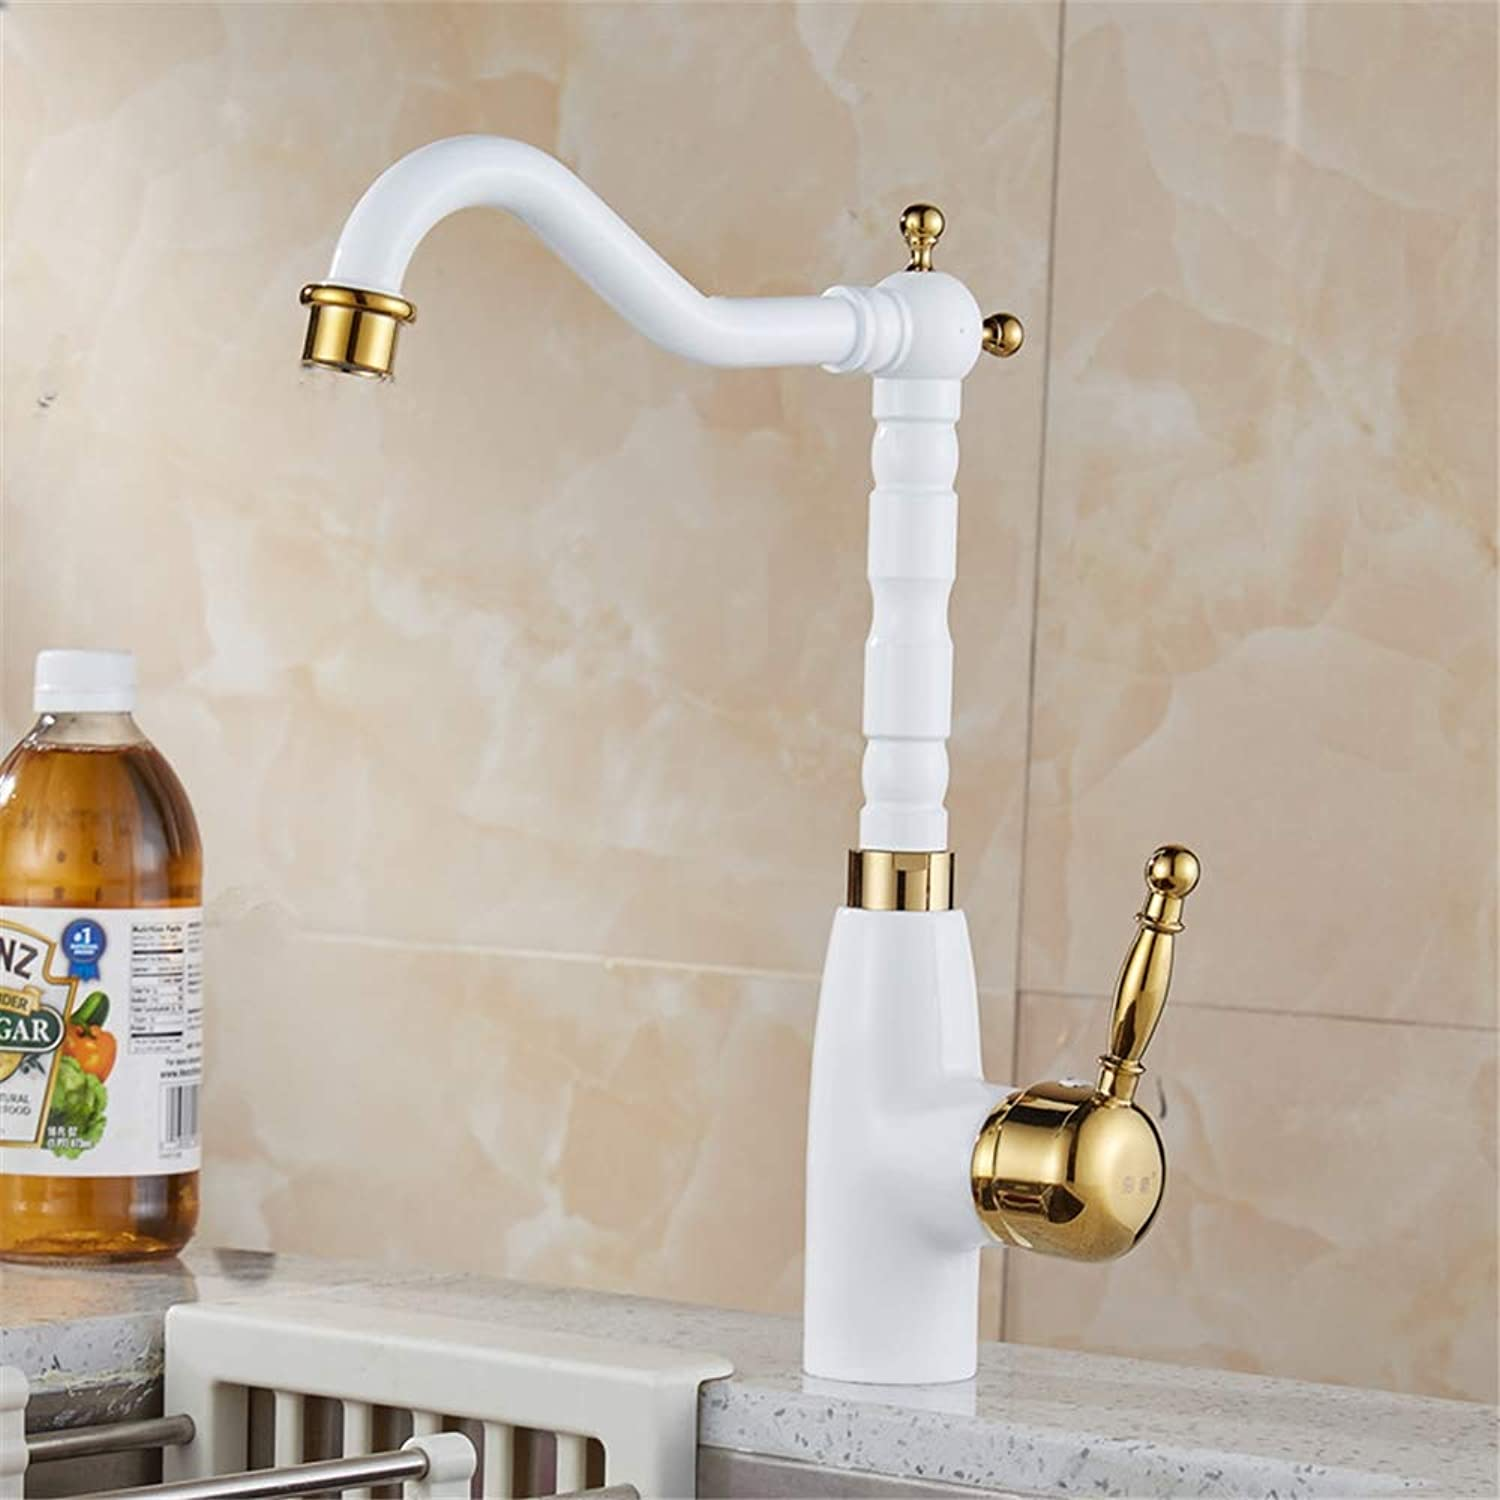 YBHNB Kitchen Sink Taps, European style White paint with gold polish single handle brass Crane Hot and cold mixing Kitchen Faucet